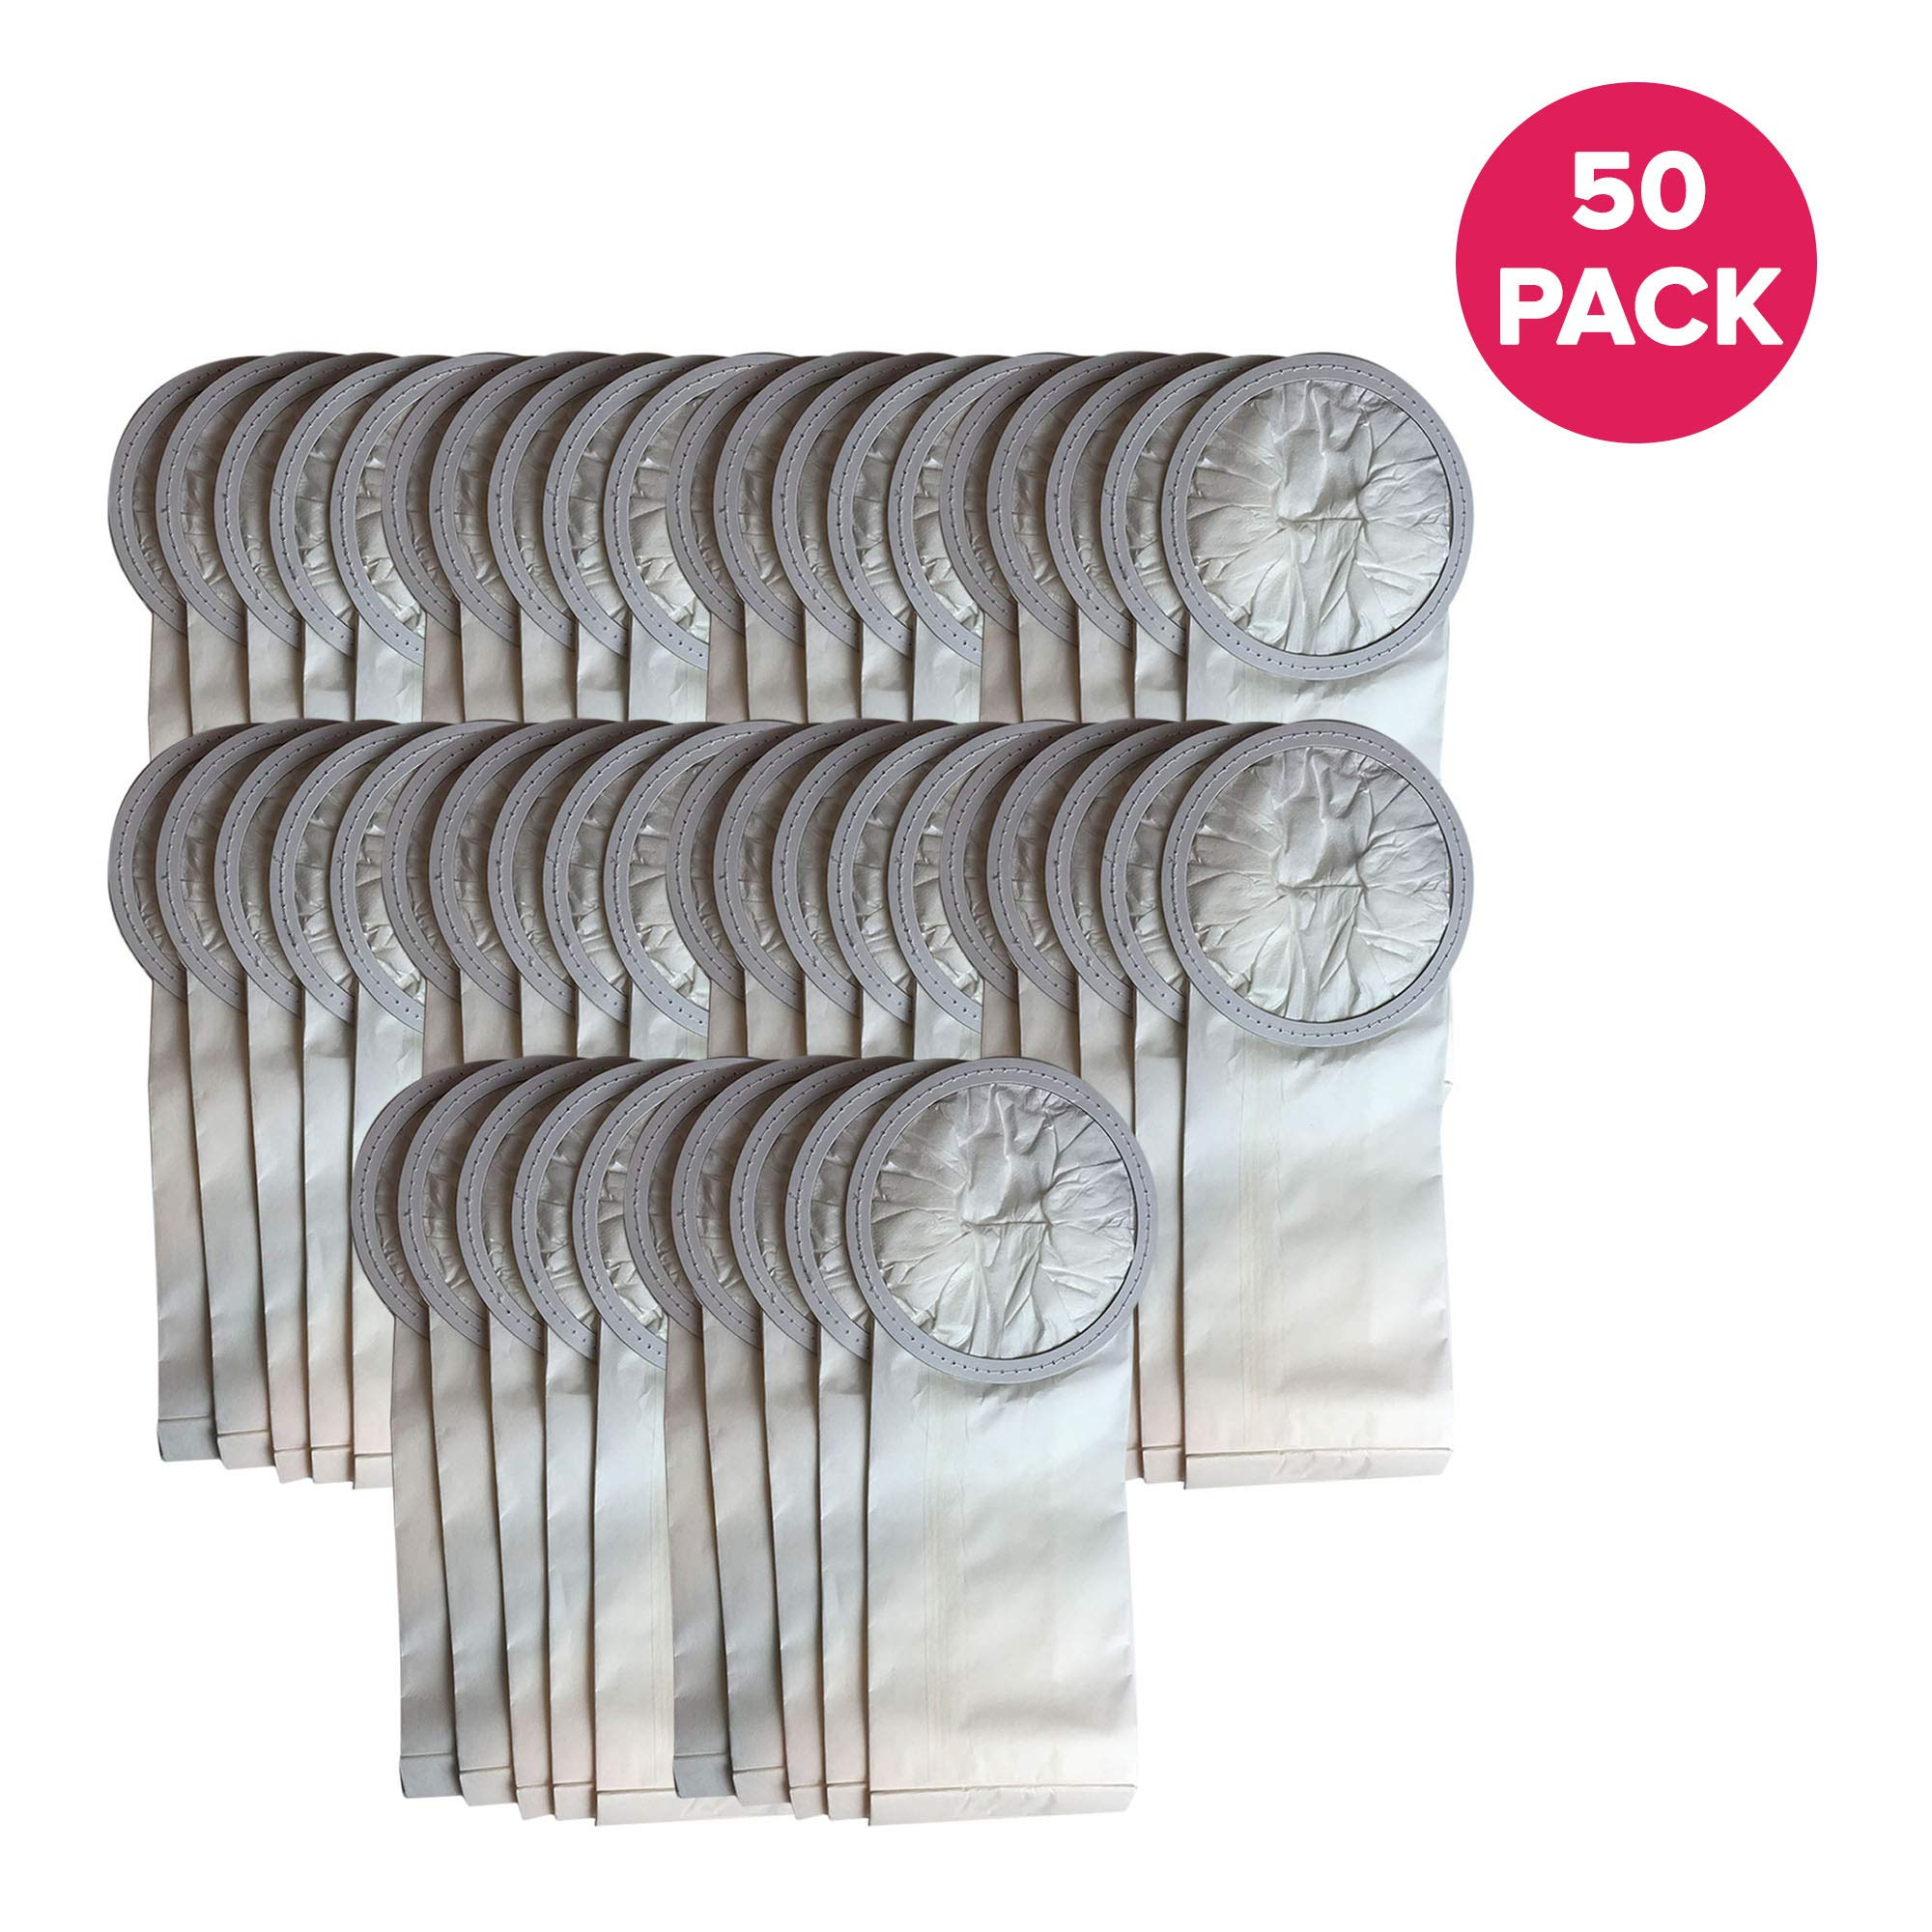 Crucial Vacuum Replacement Vac Bags Part # 100431, 450227 - Compatible with ProTeam 6 QT Bags Fit 6-Quart Backpacks Vac Bags - Compact Disposable Bag - Home, Vacs, Models - (50 Pack)